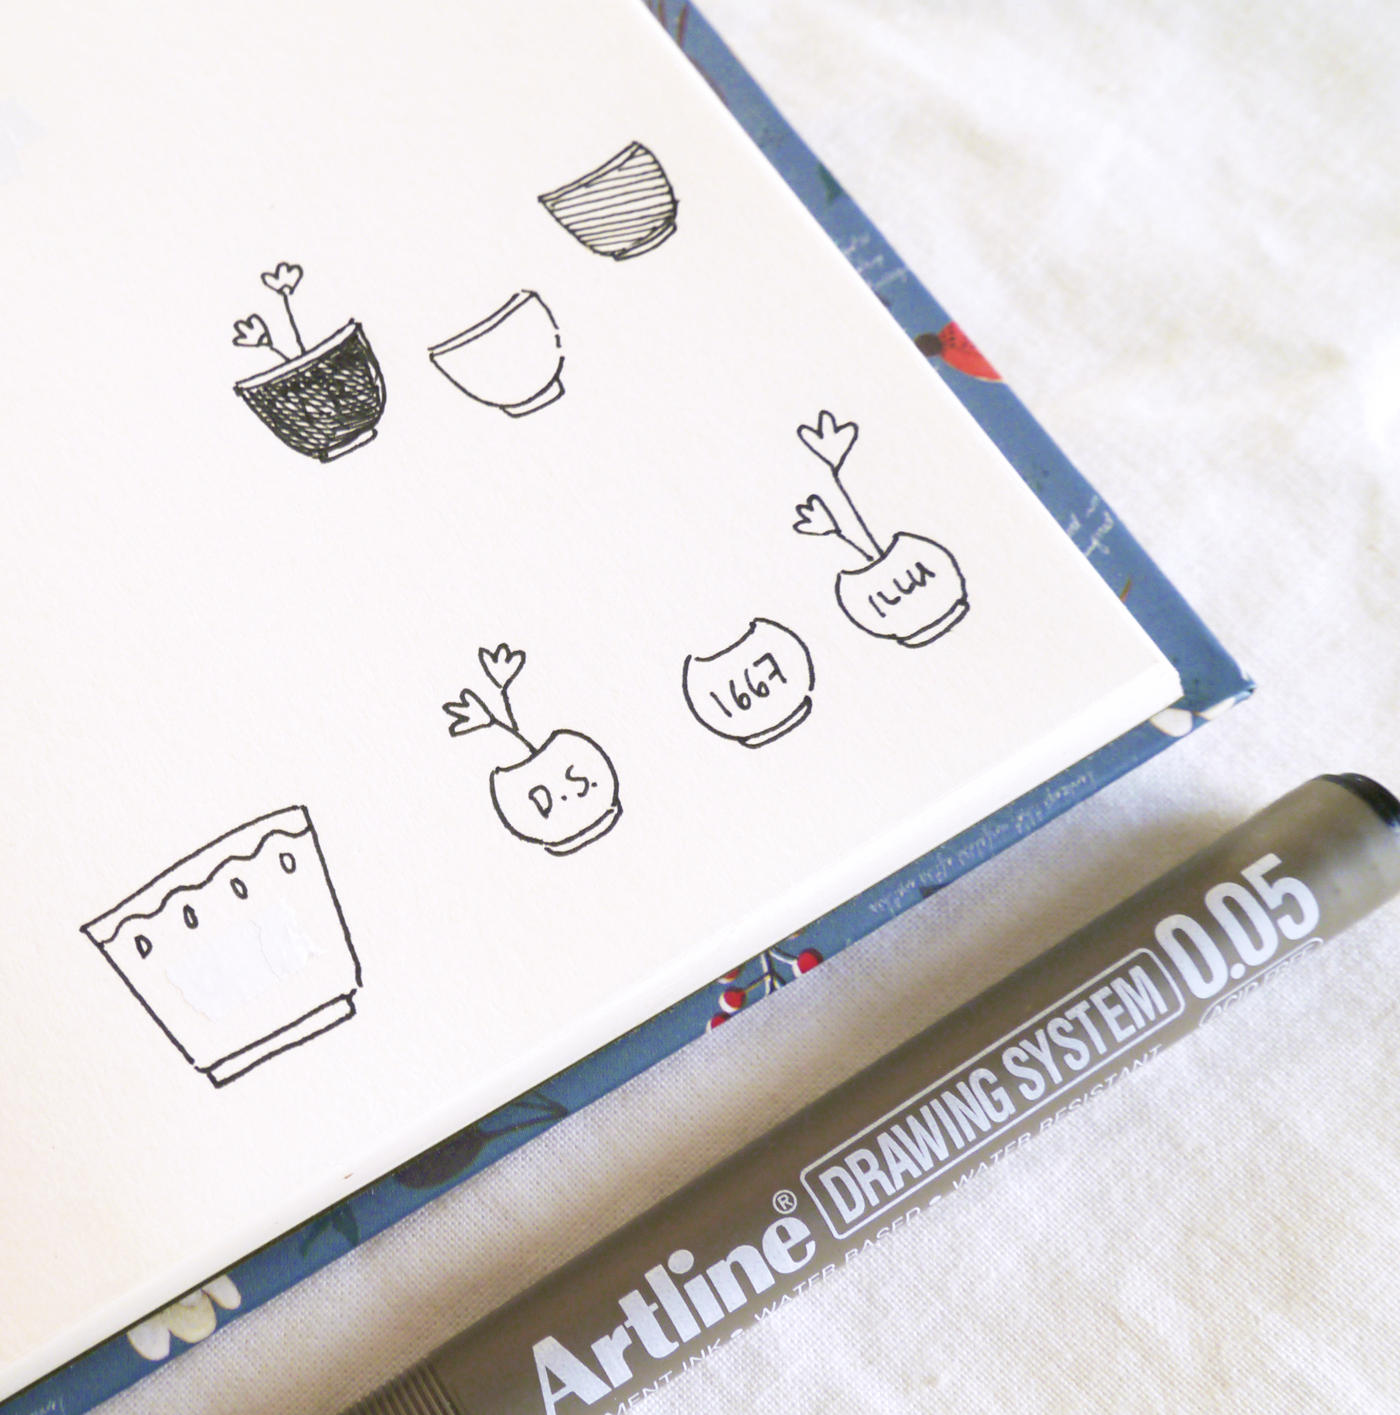 Discovering your Productivity Potential in a Bullet Journal - cute doodles to make productivity just a bit more fun and creative! I love how these little Pomodoro technique trackers aren't just cute, but also help me reflect on where exactly I spent most of my time, which tasks get done quickly, which ones take forever...